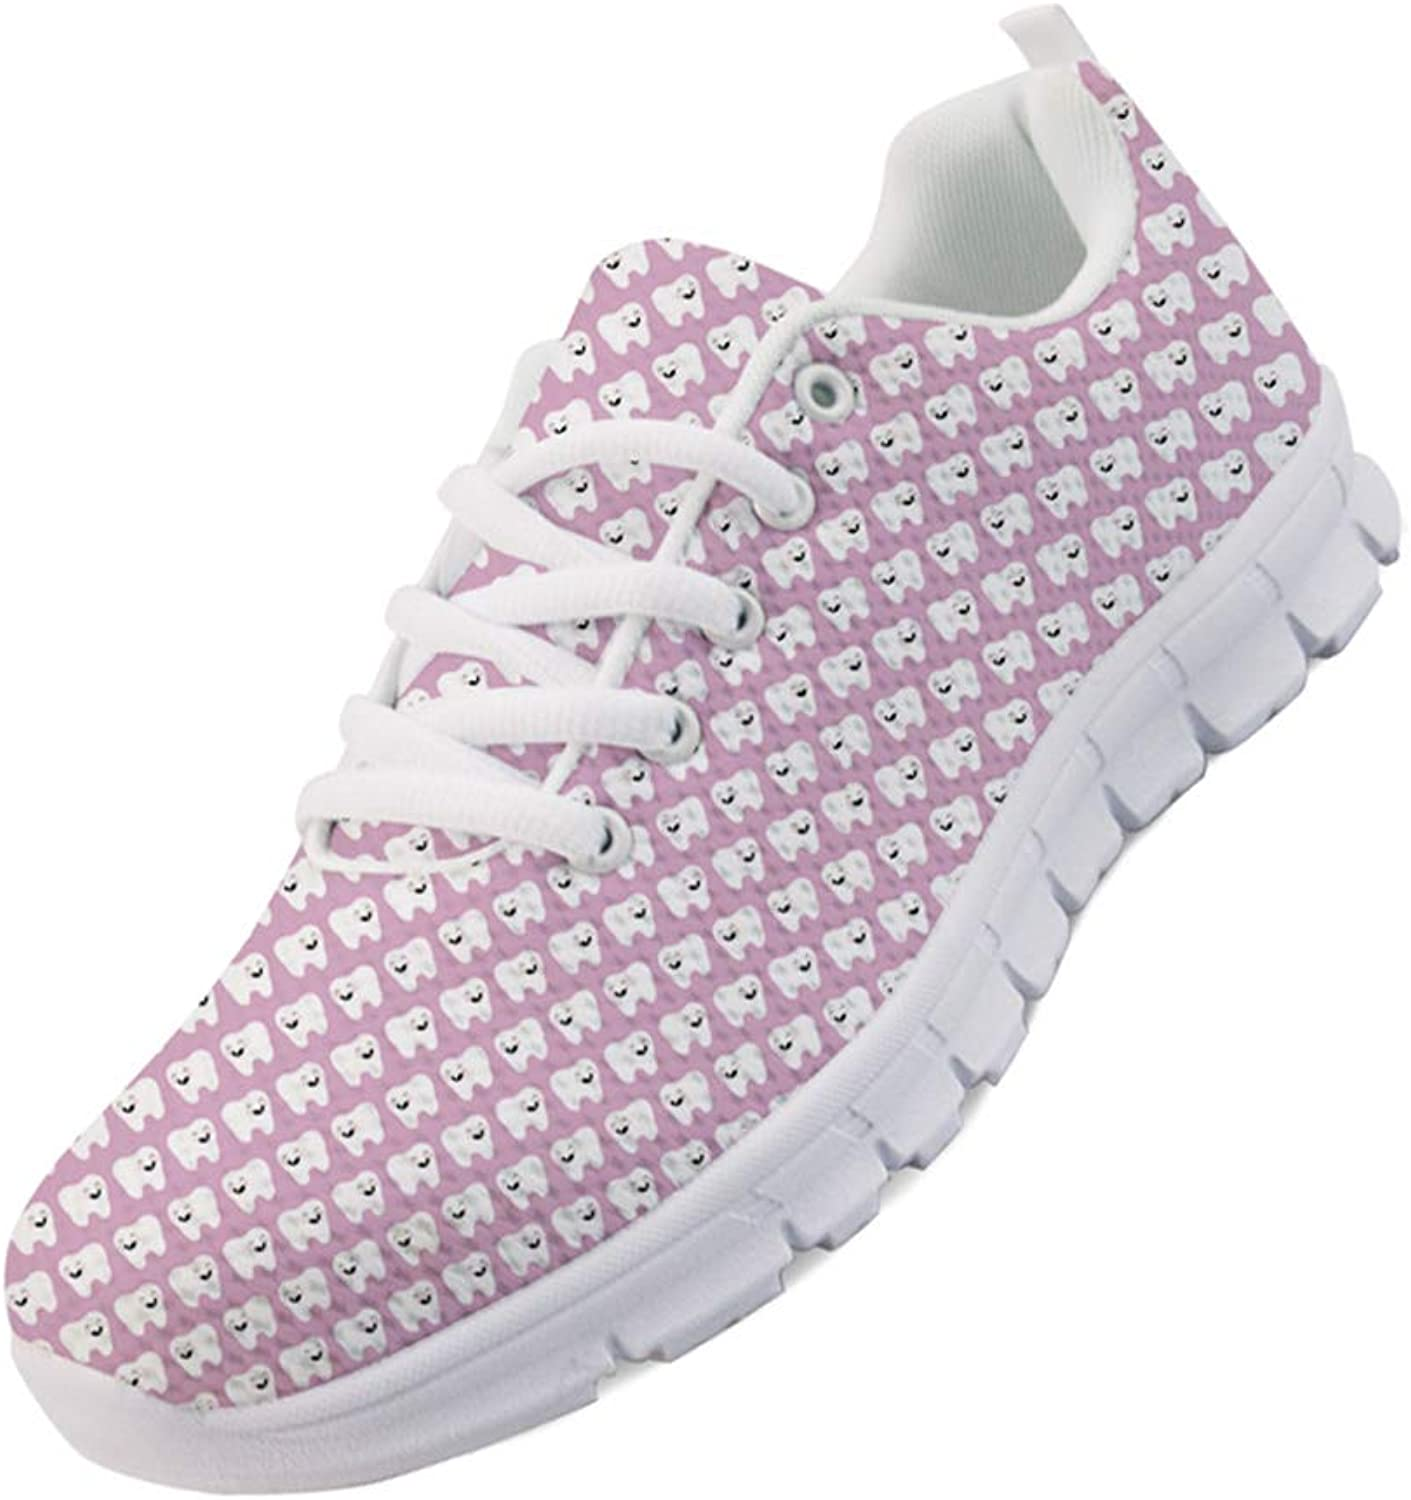 Mumeson Women Walking Sneakers Tooth Dentist Pattern Road Running shoes Lace-up Lightweight